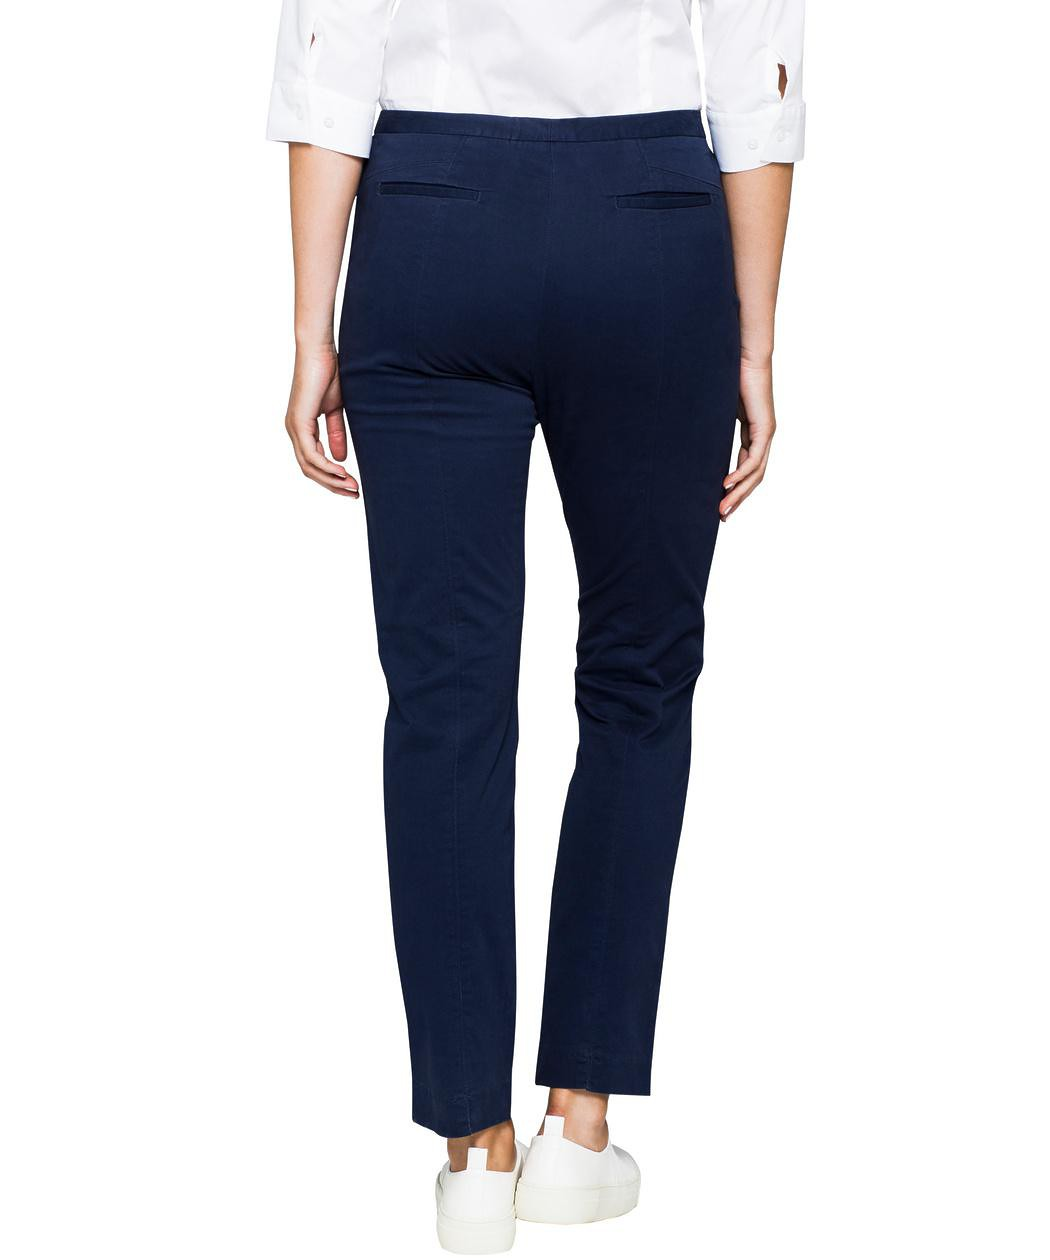 womens business casual pants photo - 1